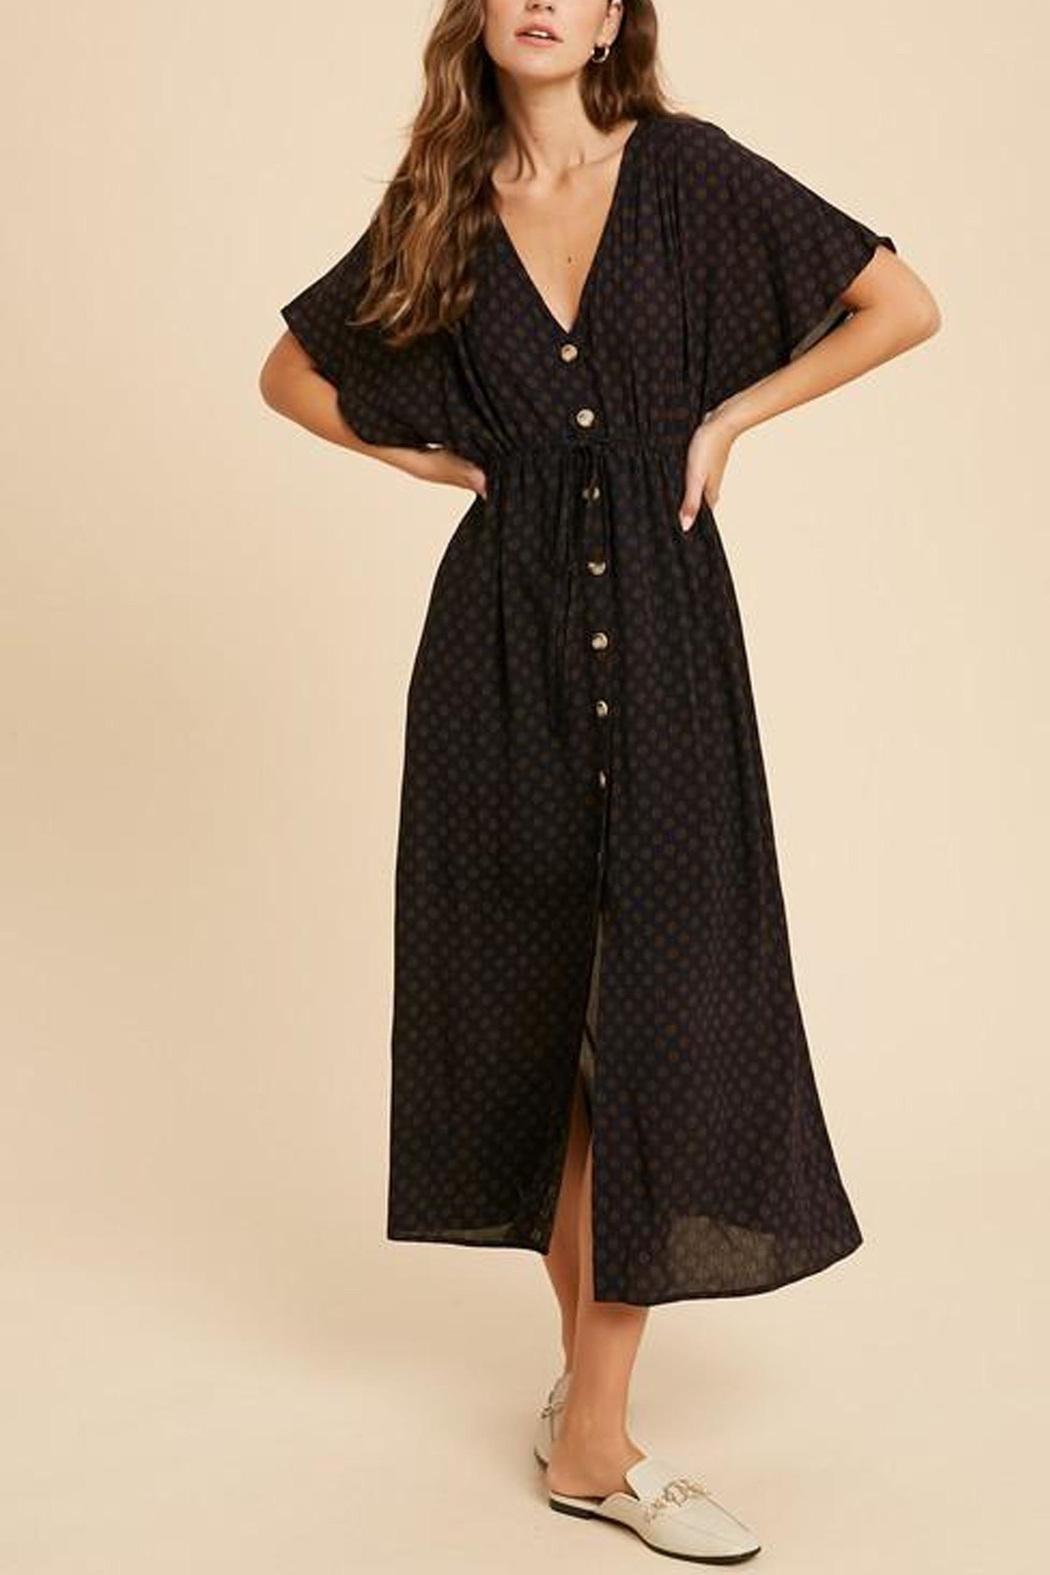 Wishlist Button-Down Waist-Tie Maxi-Dress - Main Image